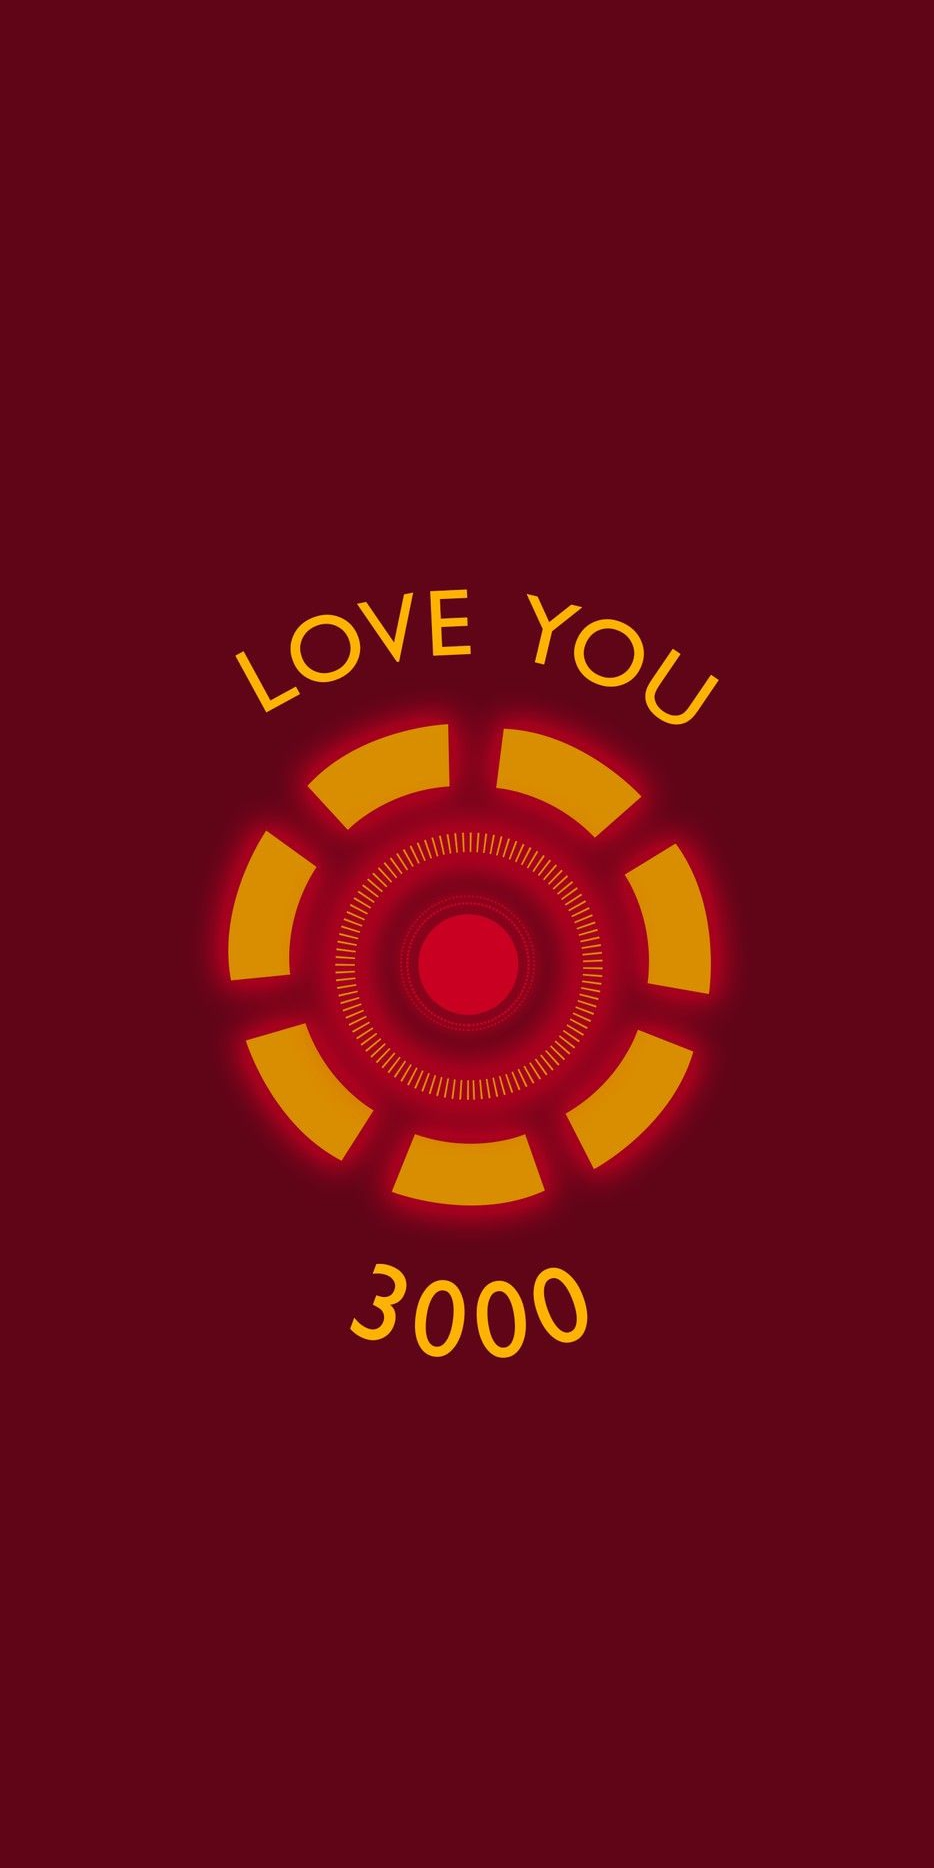 Iron Man Love You 3000 iPhone Wallpaper